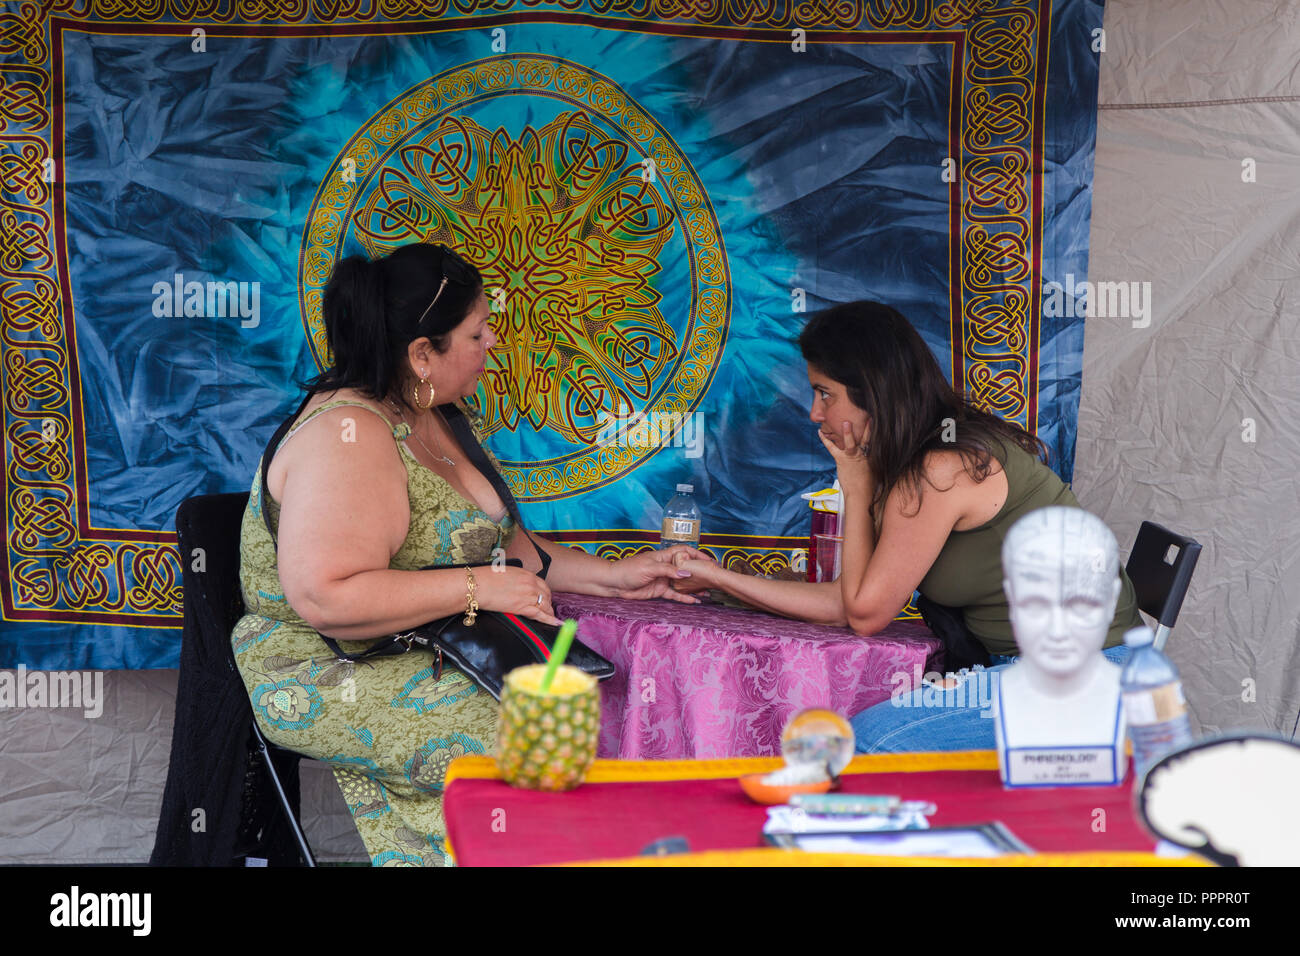 TORONTO, ON, CANADA - JULY 29, 2018: A fortune teller with a client at Kensington market in Toronto. - Stock Image